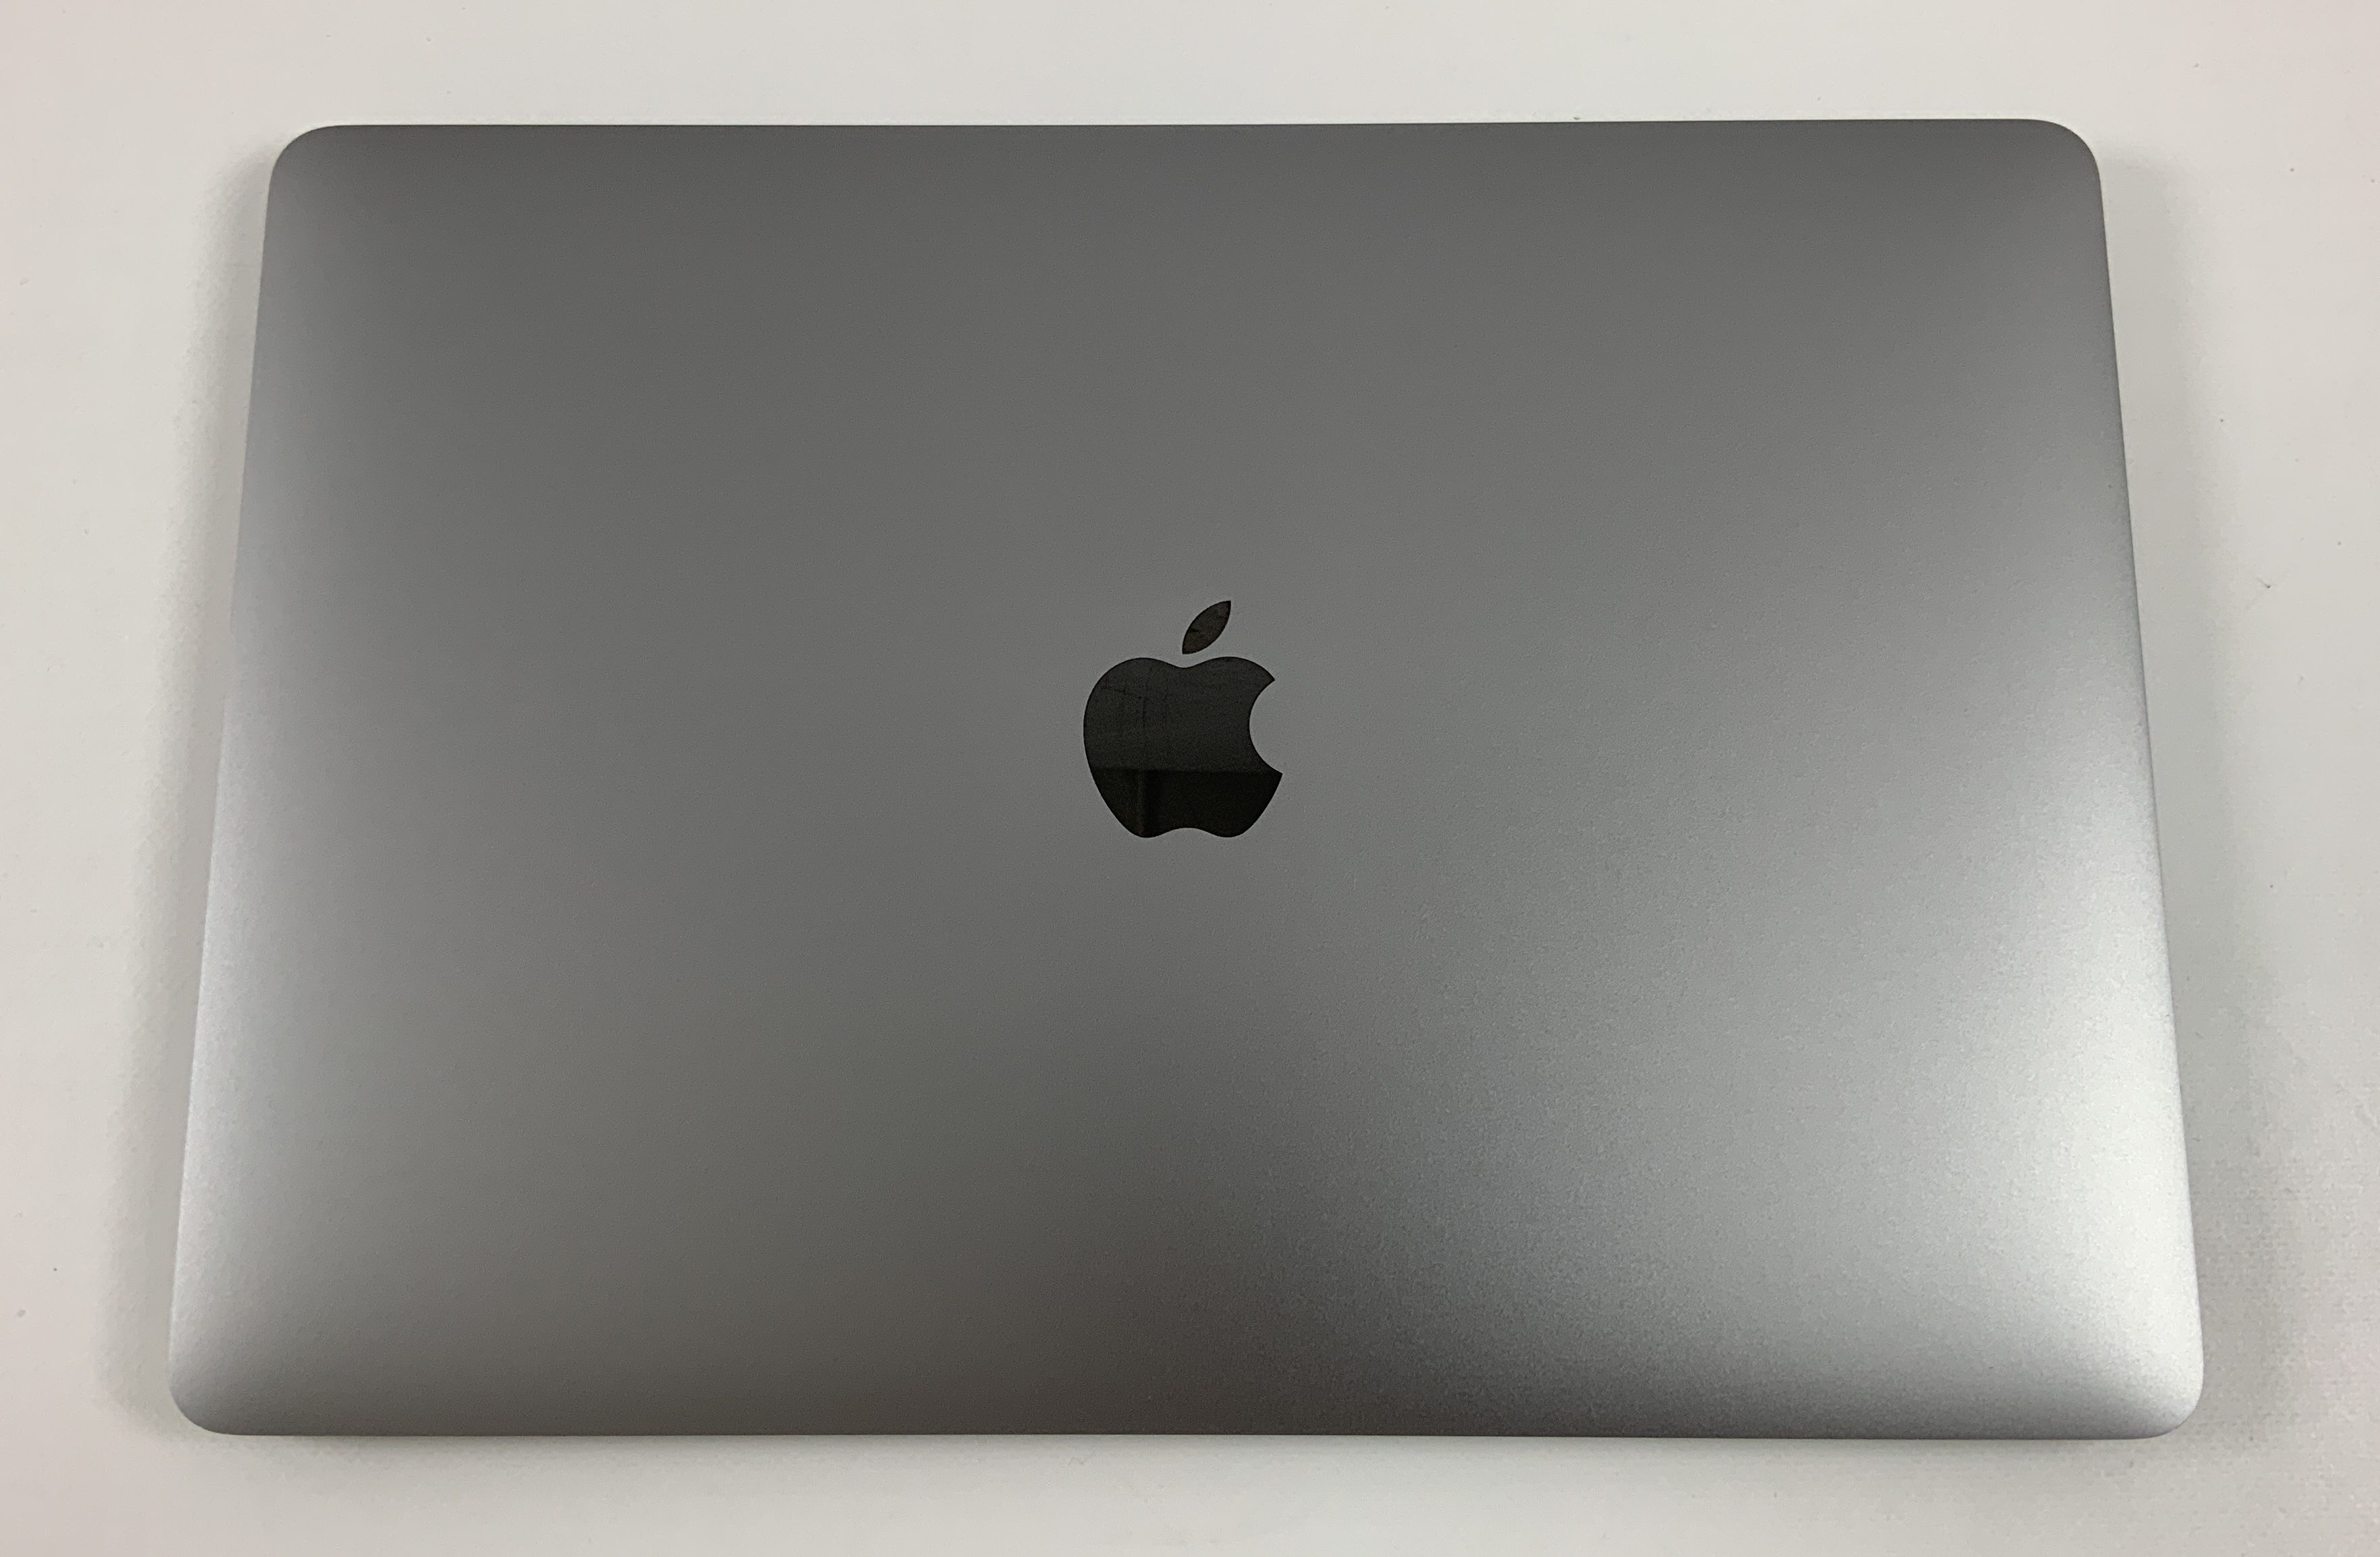 "MacBook Pro 13"" 2TBT Mid 2017 (Intel Core i5 2.3 GHz 8 GB RAM 128 GB SSD), Space Gray, Intel Core i5 2.3 GHz, 8 GB RAM, 128 GB SSD, image 2"